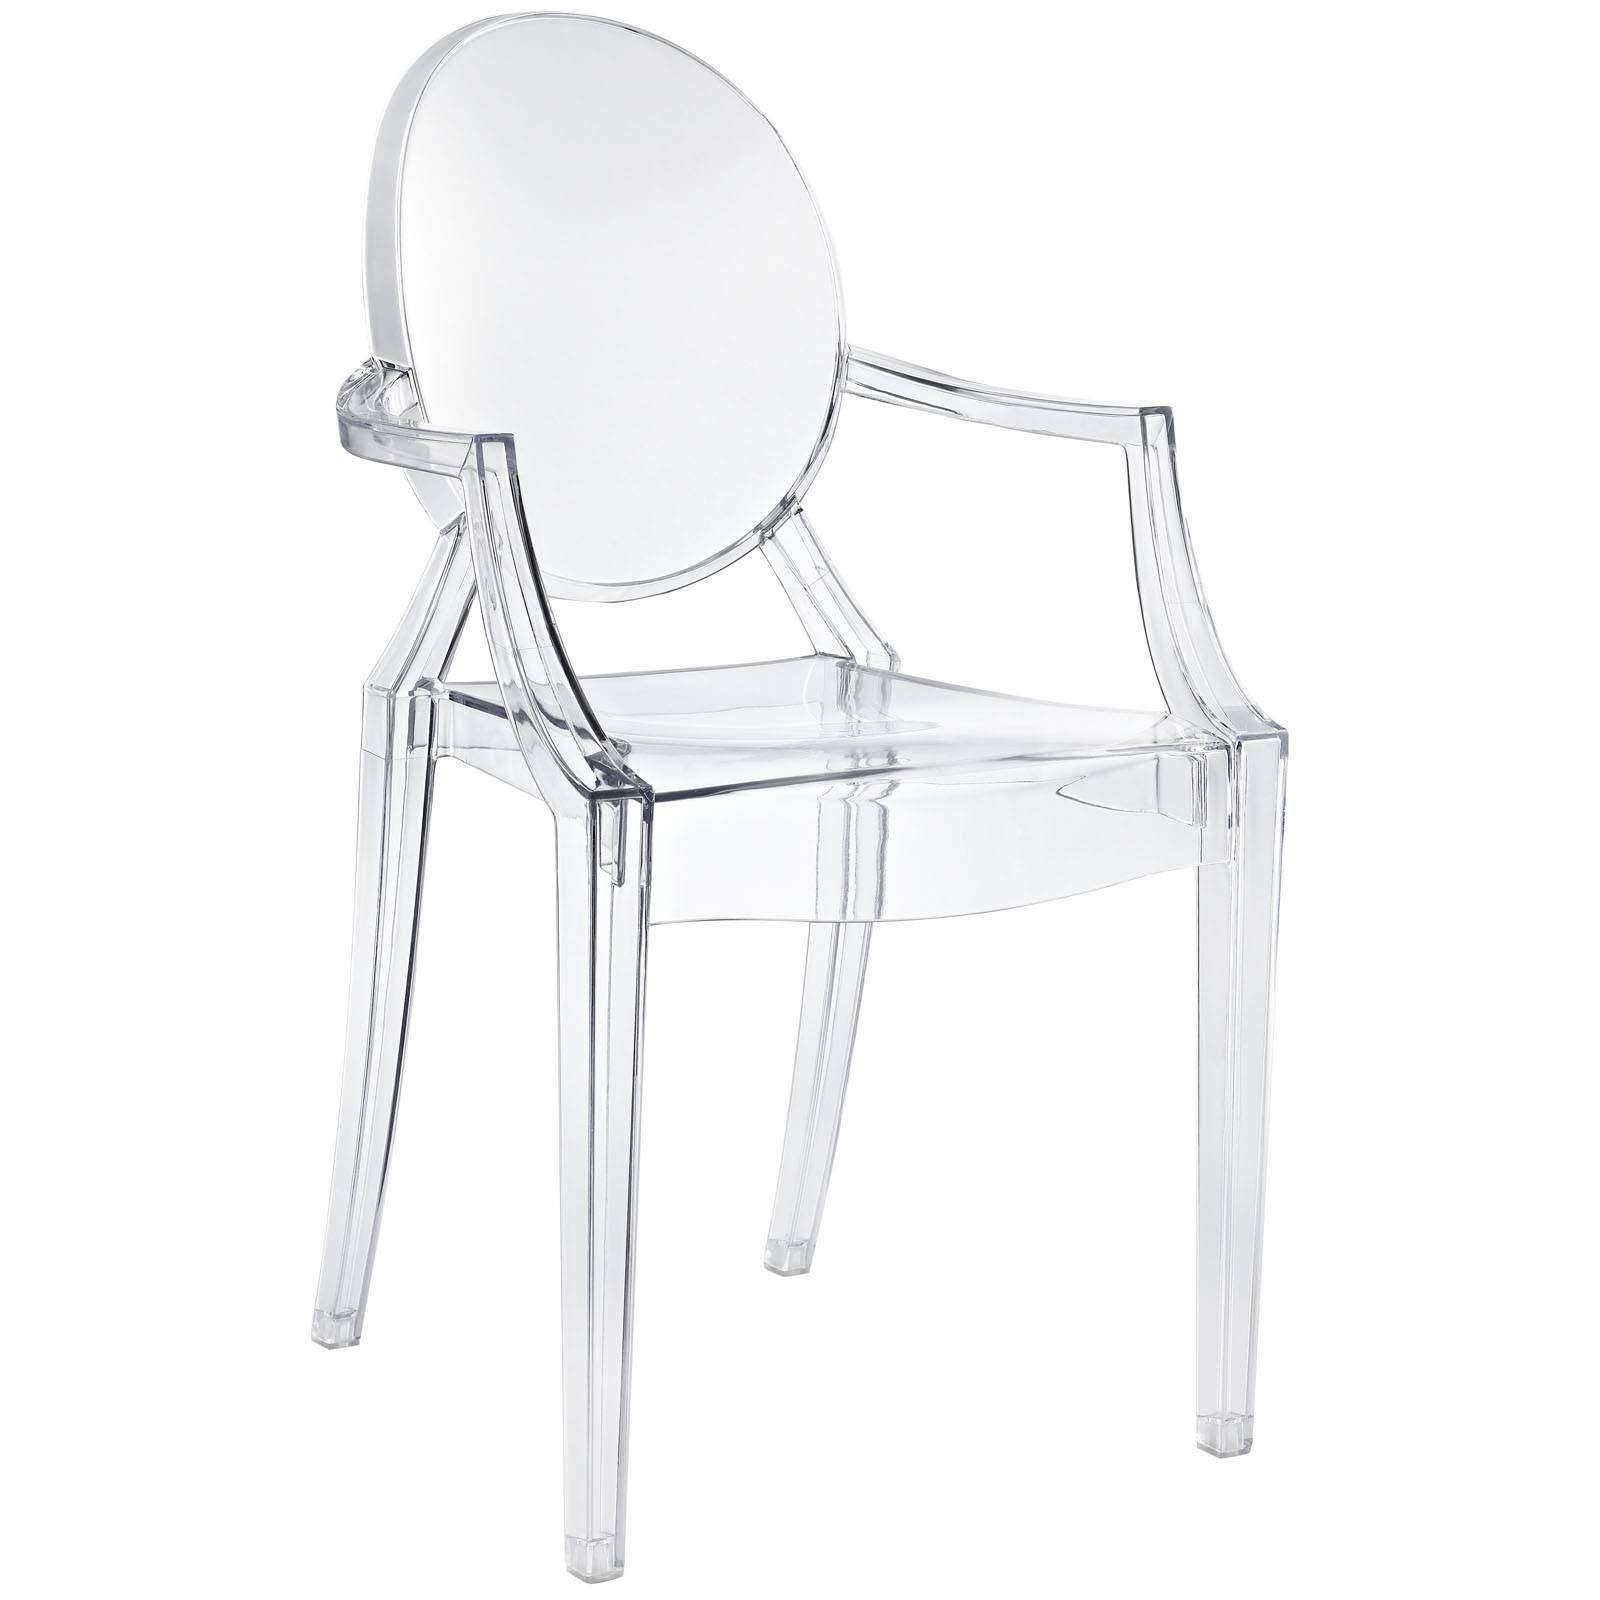 Philippe starck style louis ghost arm chair for Chaise transparente ikea